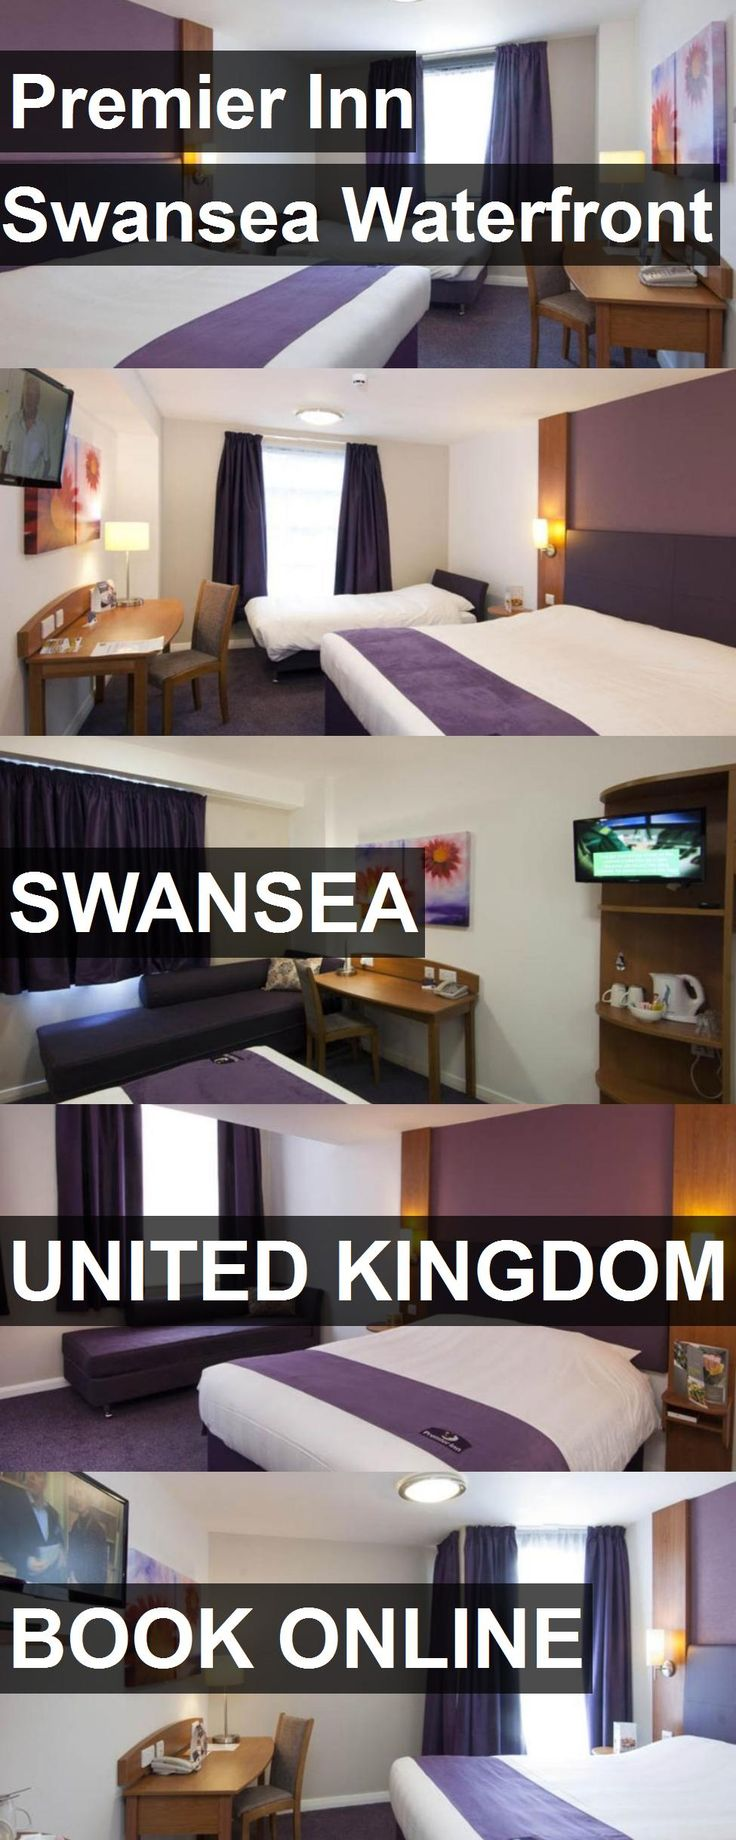 Hotel Premier Inn Swansea Waterfront in Swansea, United Kingdom. For more information, photos, reviews and best prices please follow the link. #UnitedKingdom #Swansea #travel #vacation #hotel